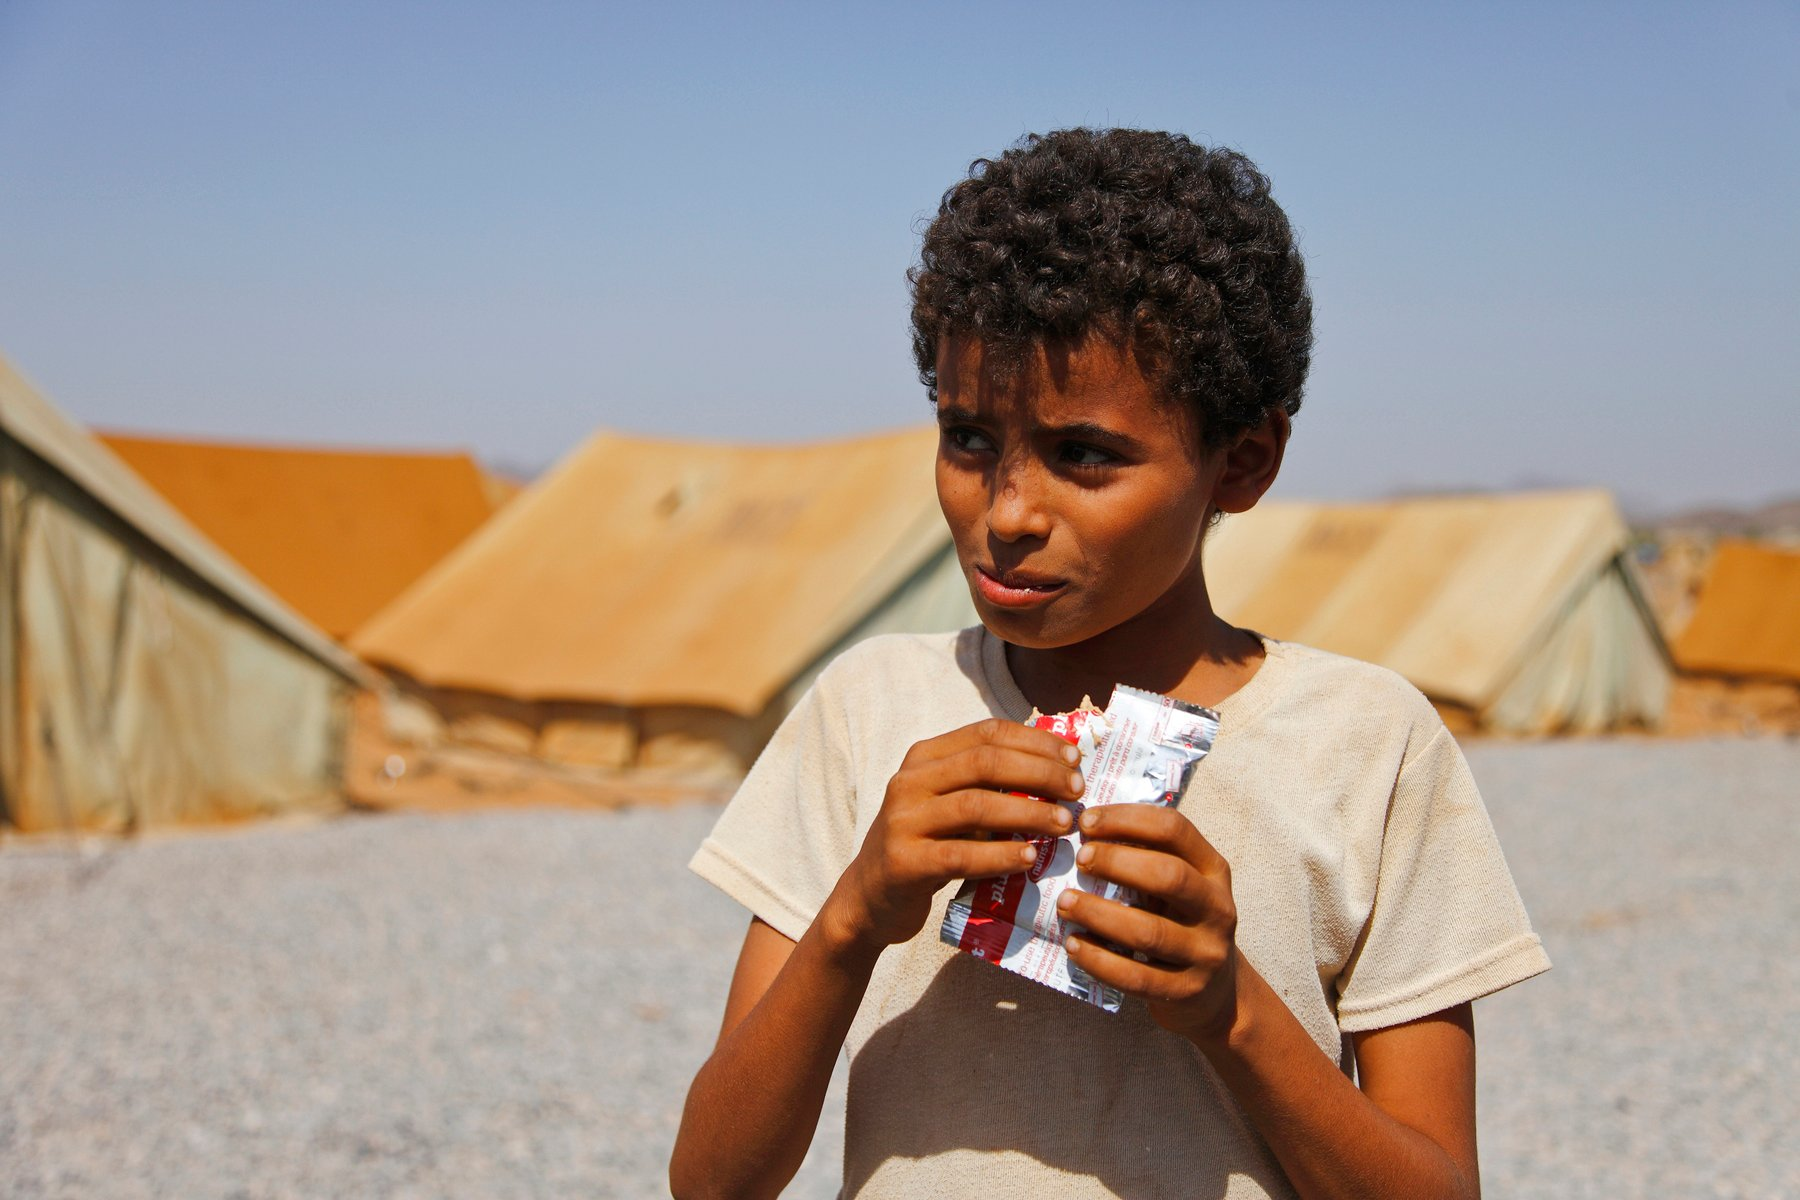 A boy in Mazrak IDP camp in north-west Yemen eats Plumpy'nut, a peanut-based food used in famine relief